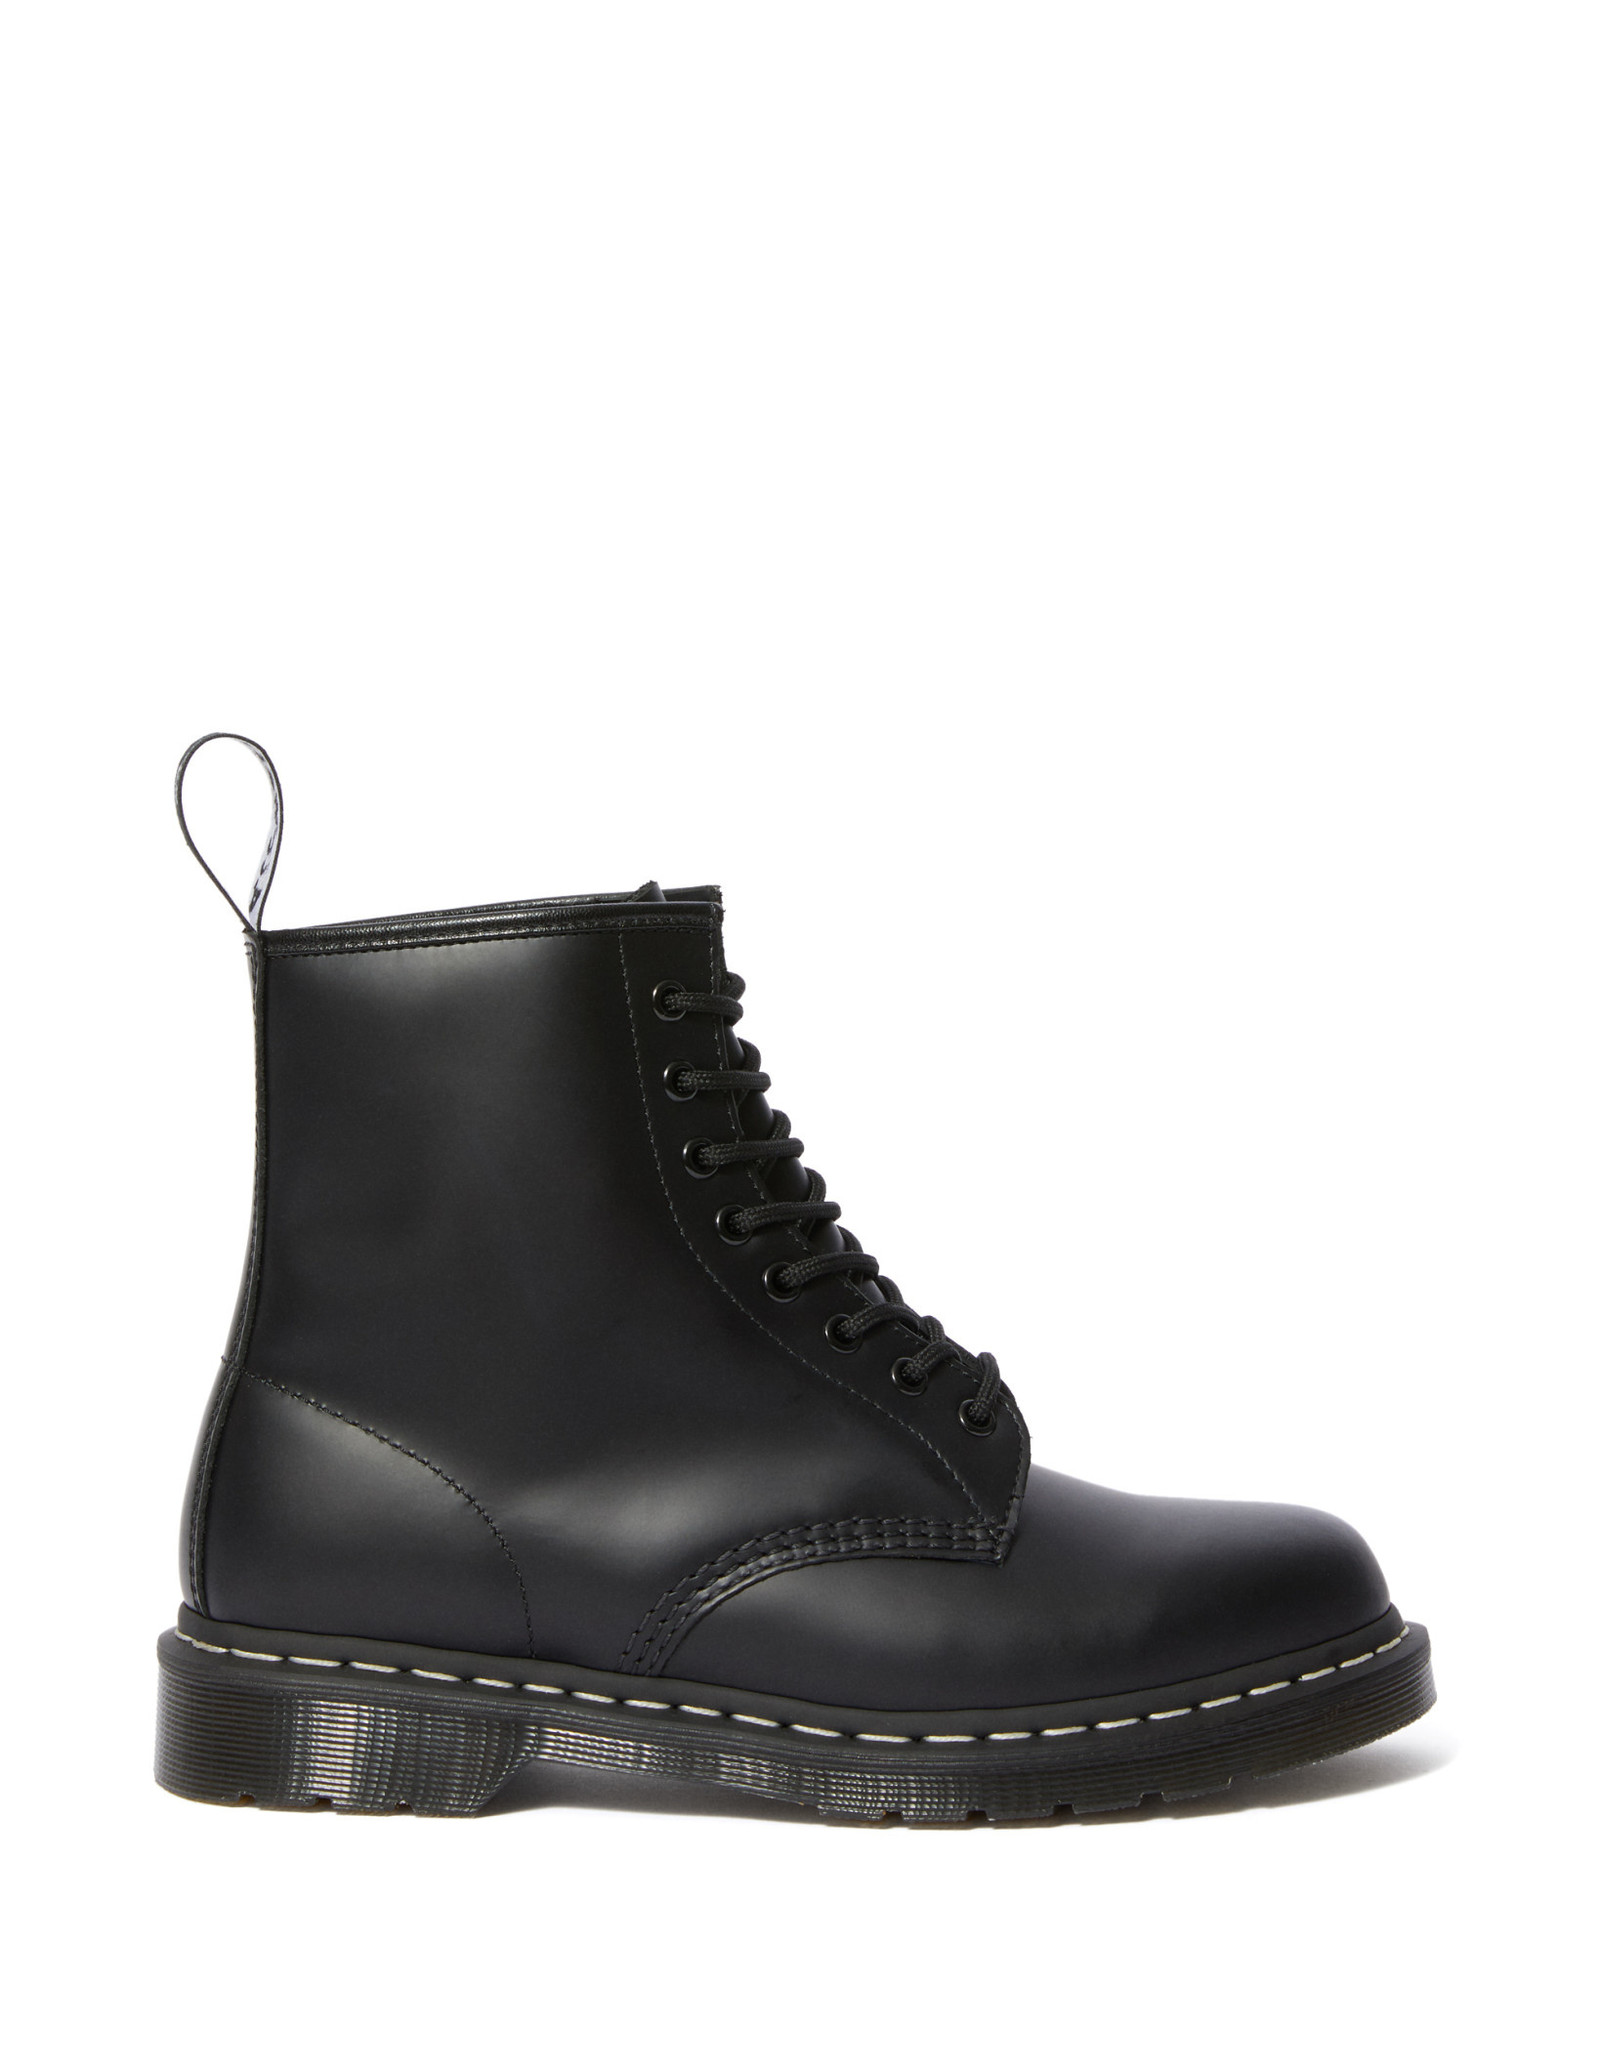 DR. MARTENS 1460 WS BLACK SMOOTH 815BWS-R24758001